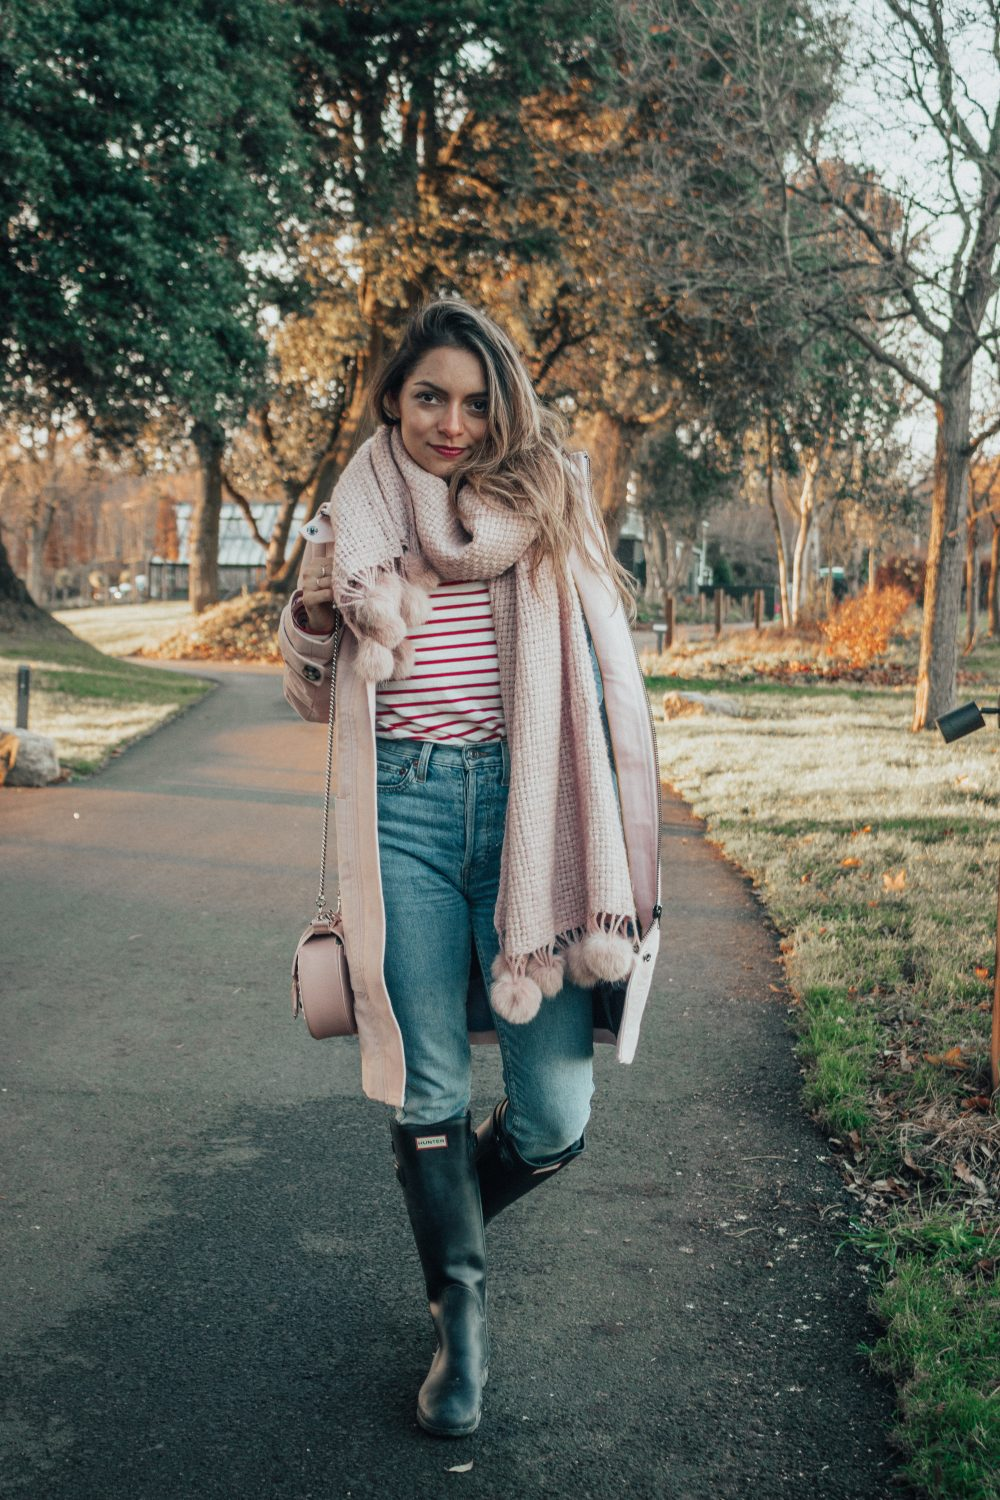 Whitney's Wonderland UK Food Blogger wearing Boden pink coat and re/done jeans